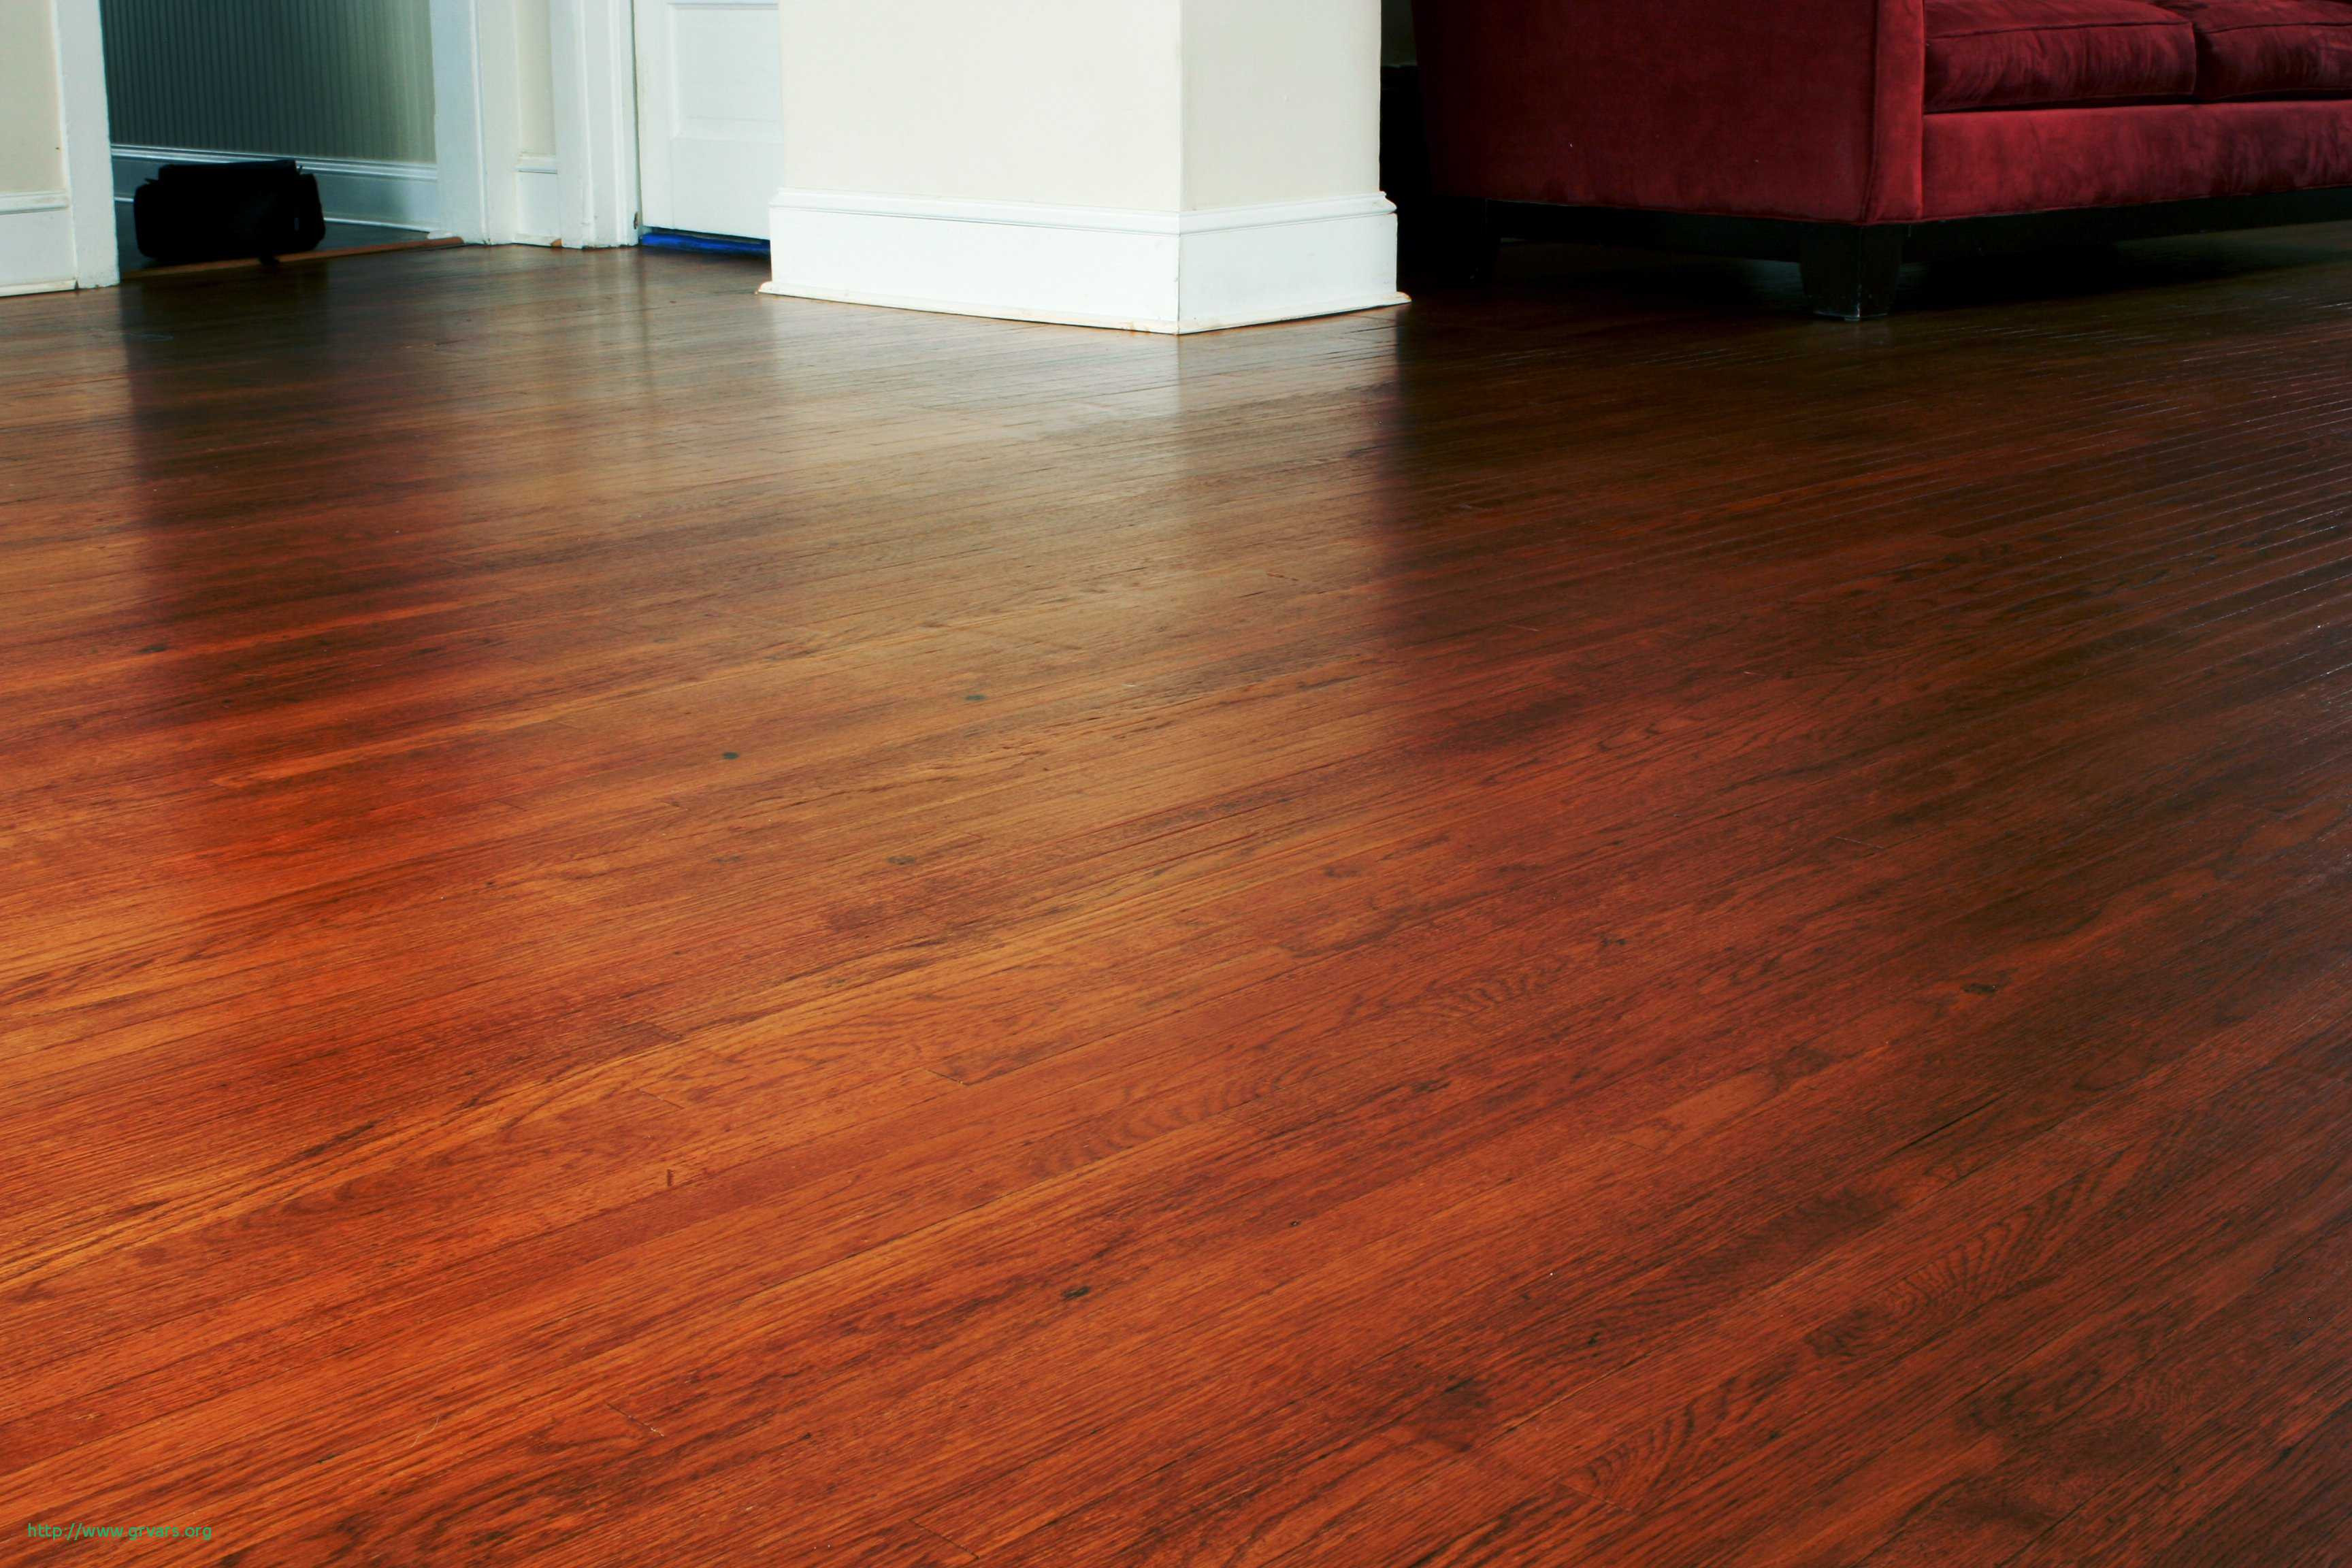 hardwood floors under carpet of how to restore hardwood floors under carpet charmant brazilian regarding how to restore hardwood floors under carpet inspirant how to diagnose and repair sloping floors homeadvisor